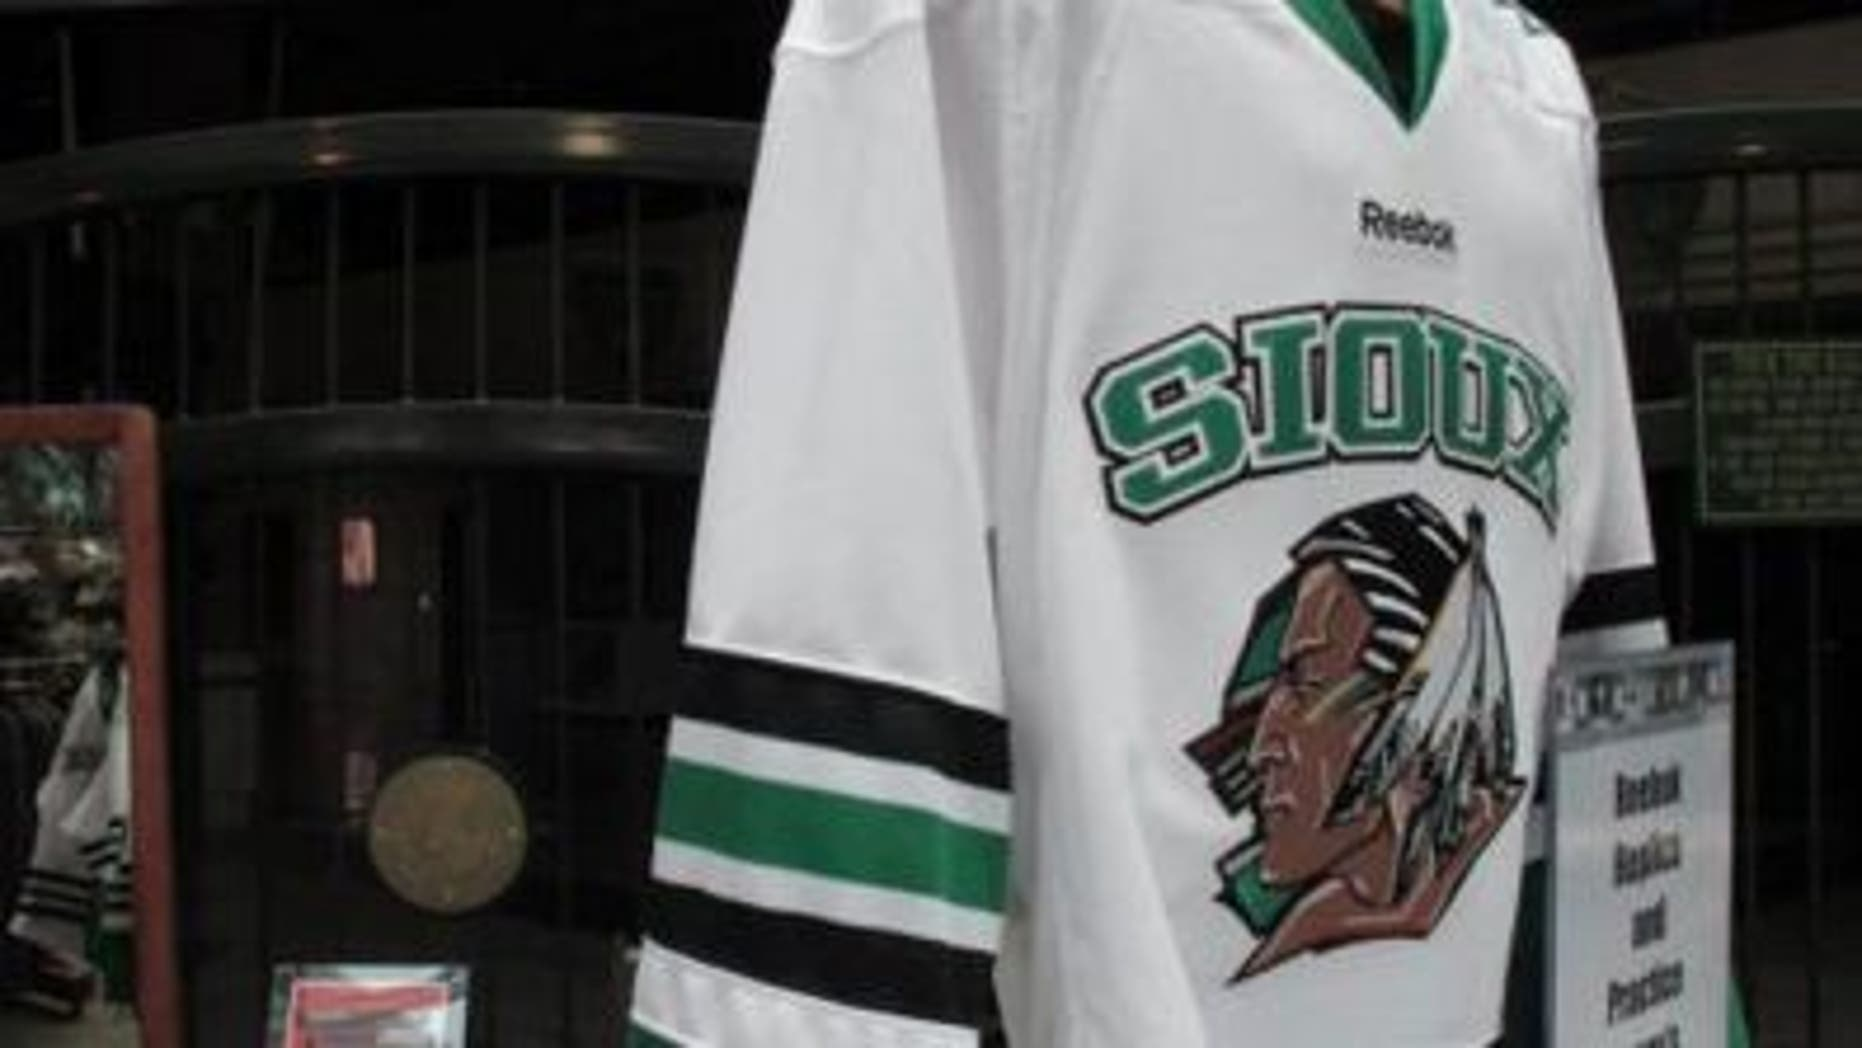 University of North Dakota jersey showing the Fighting Sioux mascot.